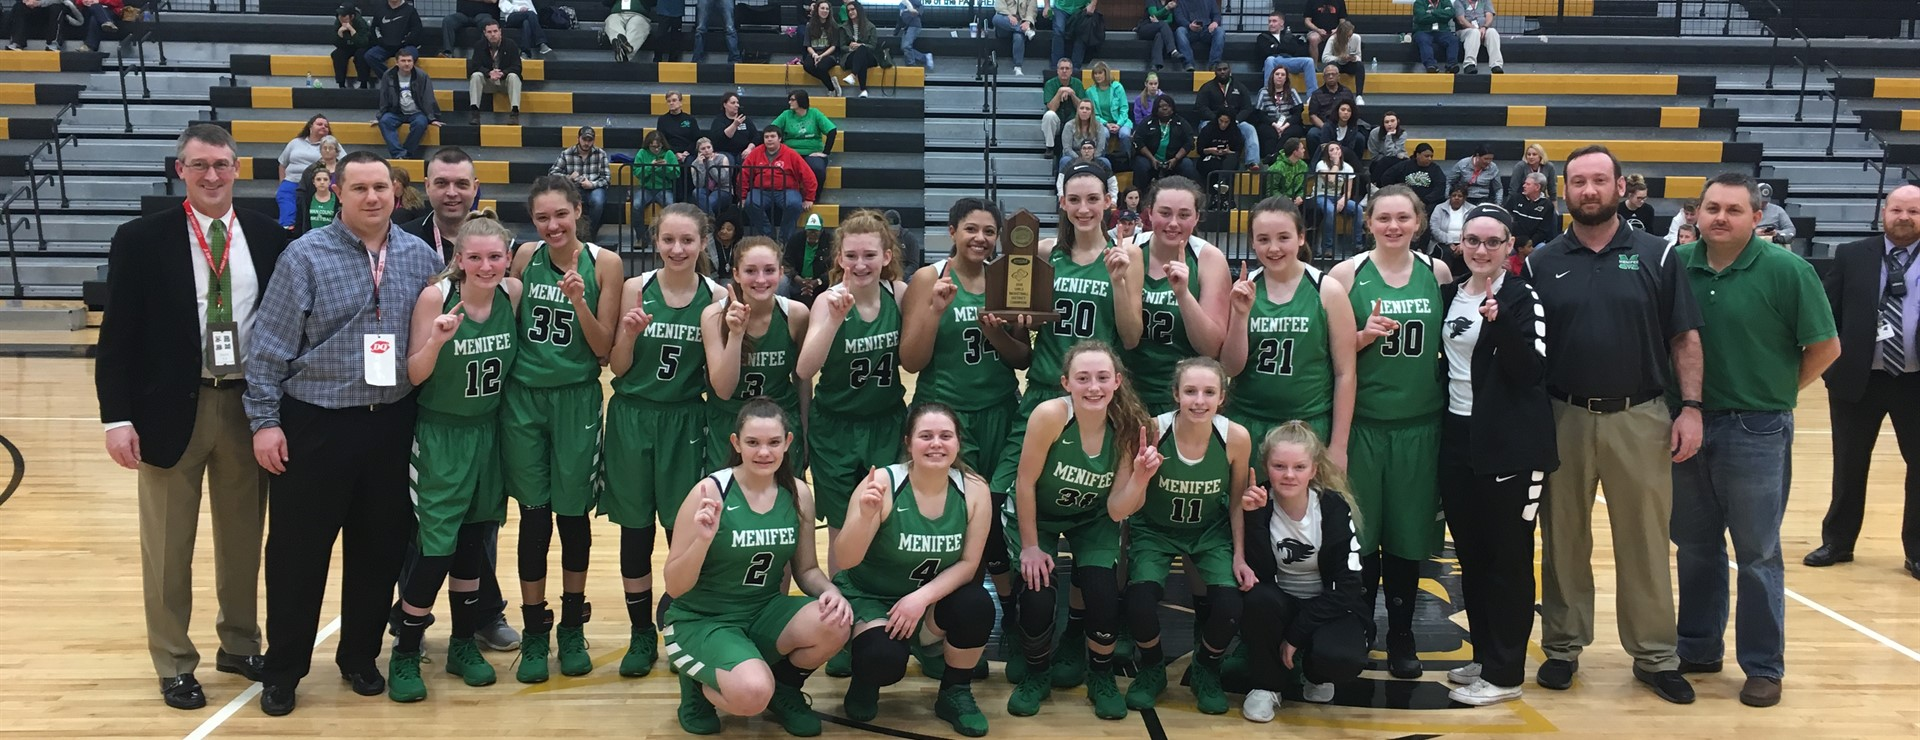 2018 Girls 61st District Champions